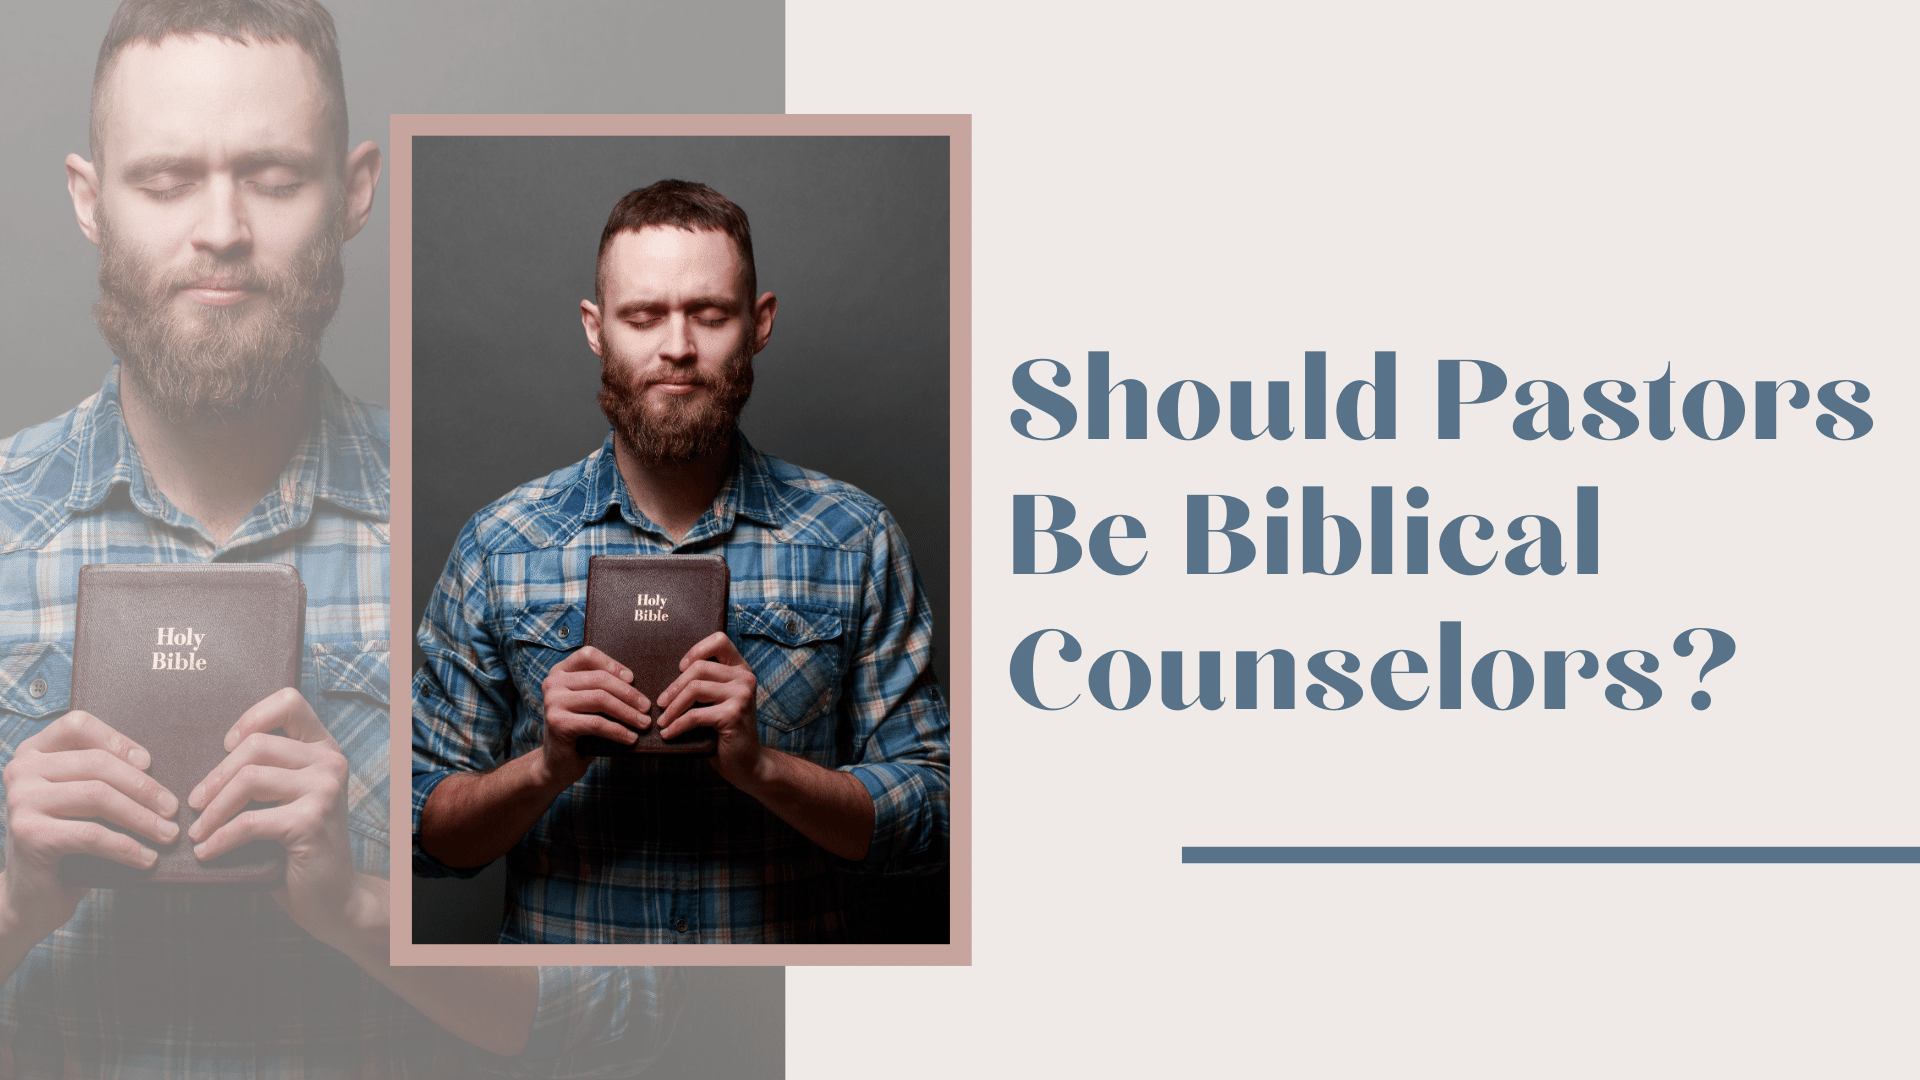 Is It a Good Idea to Expect Pastors to Be Biblical Counselors?